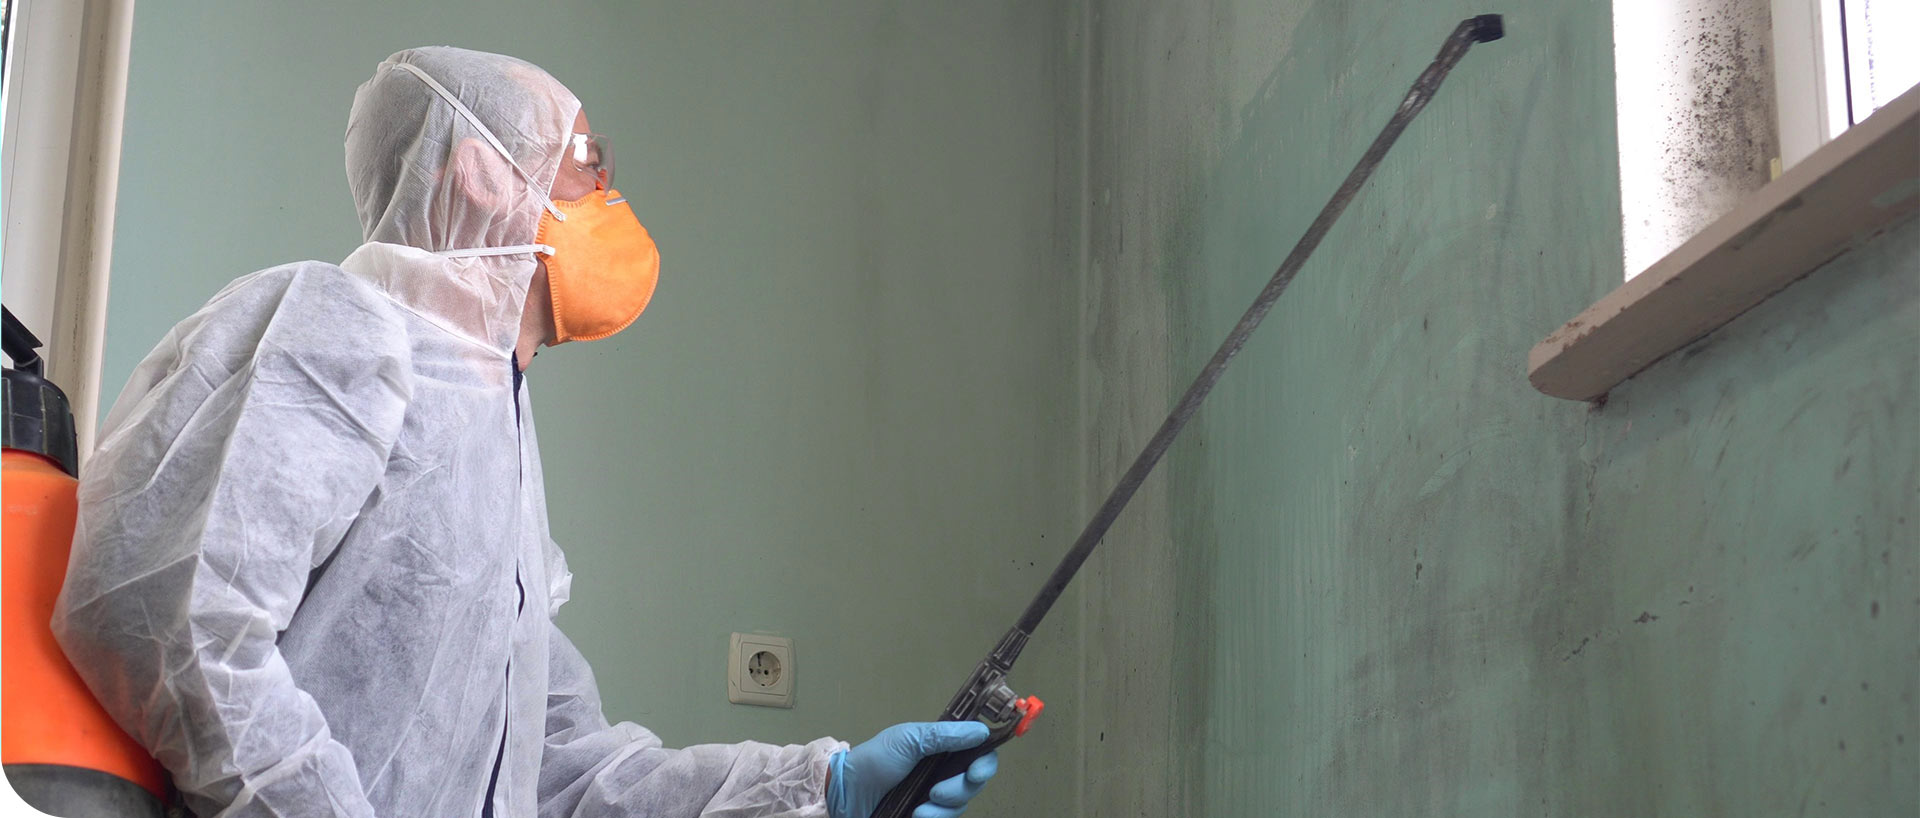 Mold Removal | MoldPro | Alberta Asbestos and Mold Removal Specialists